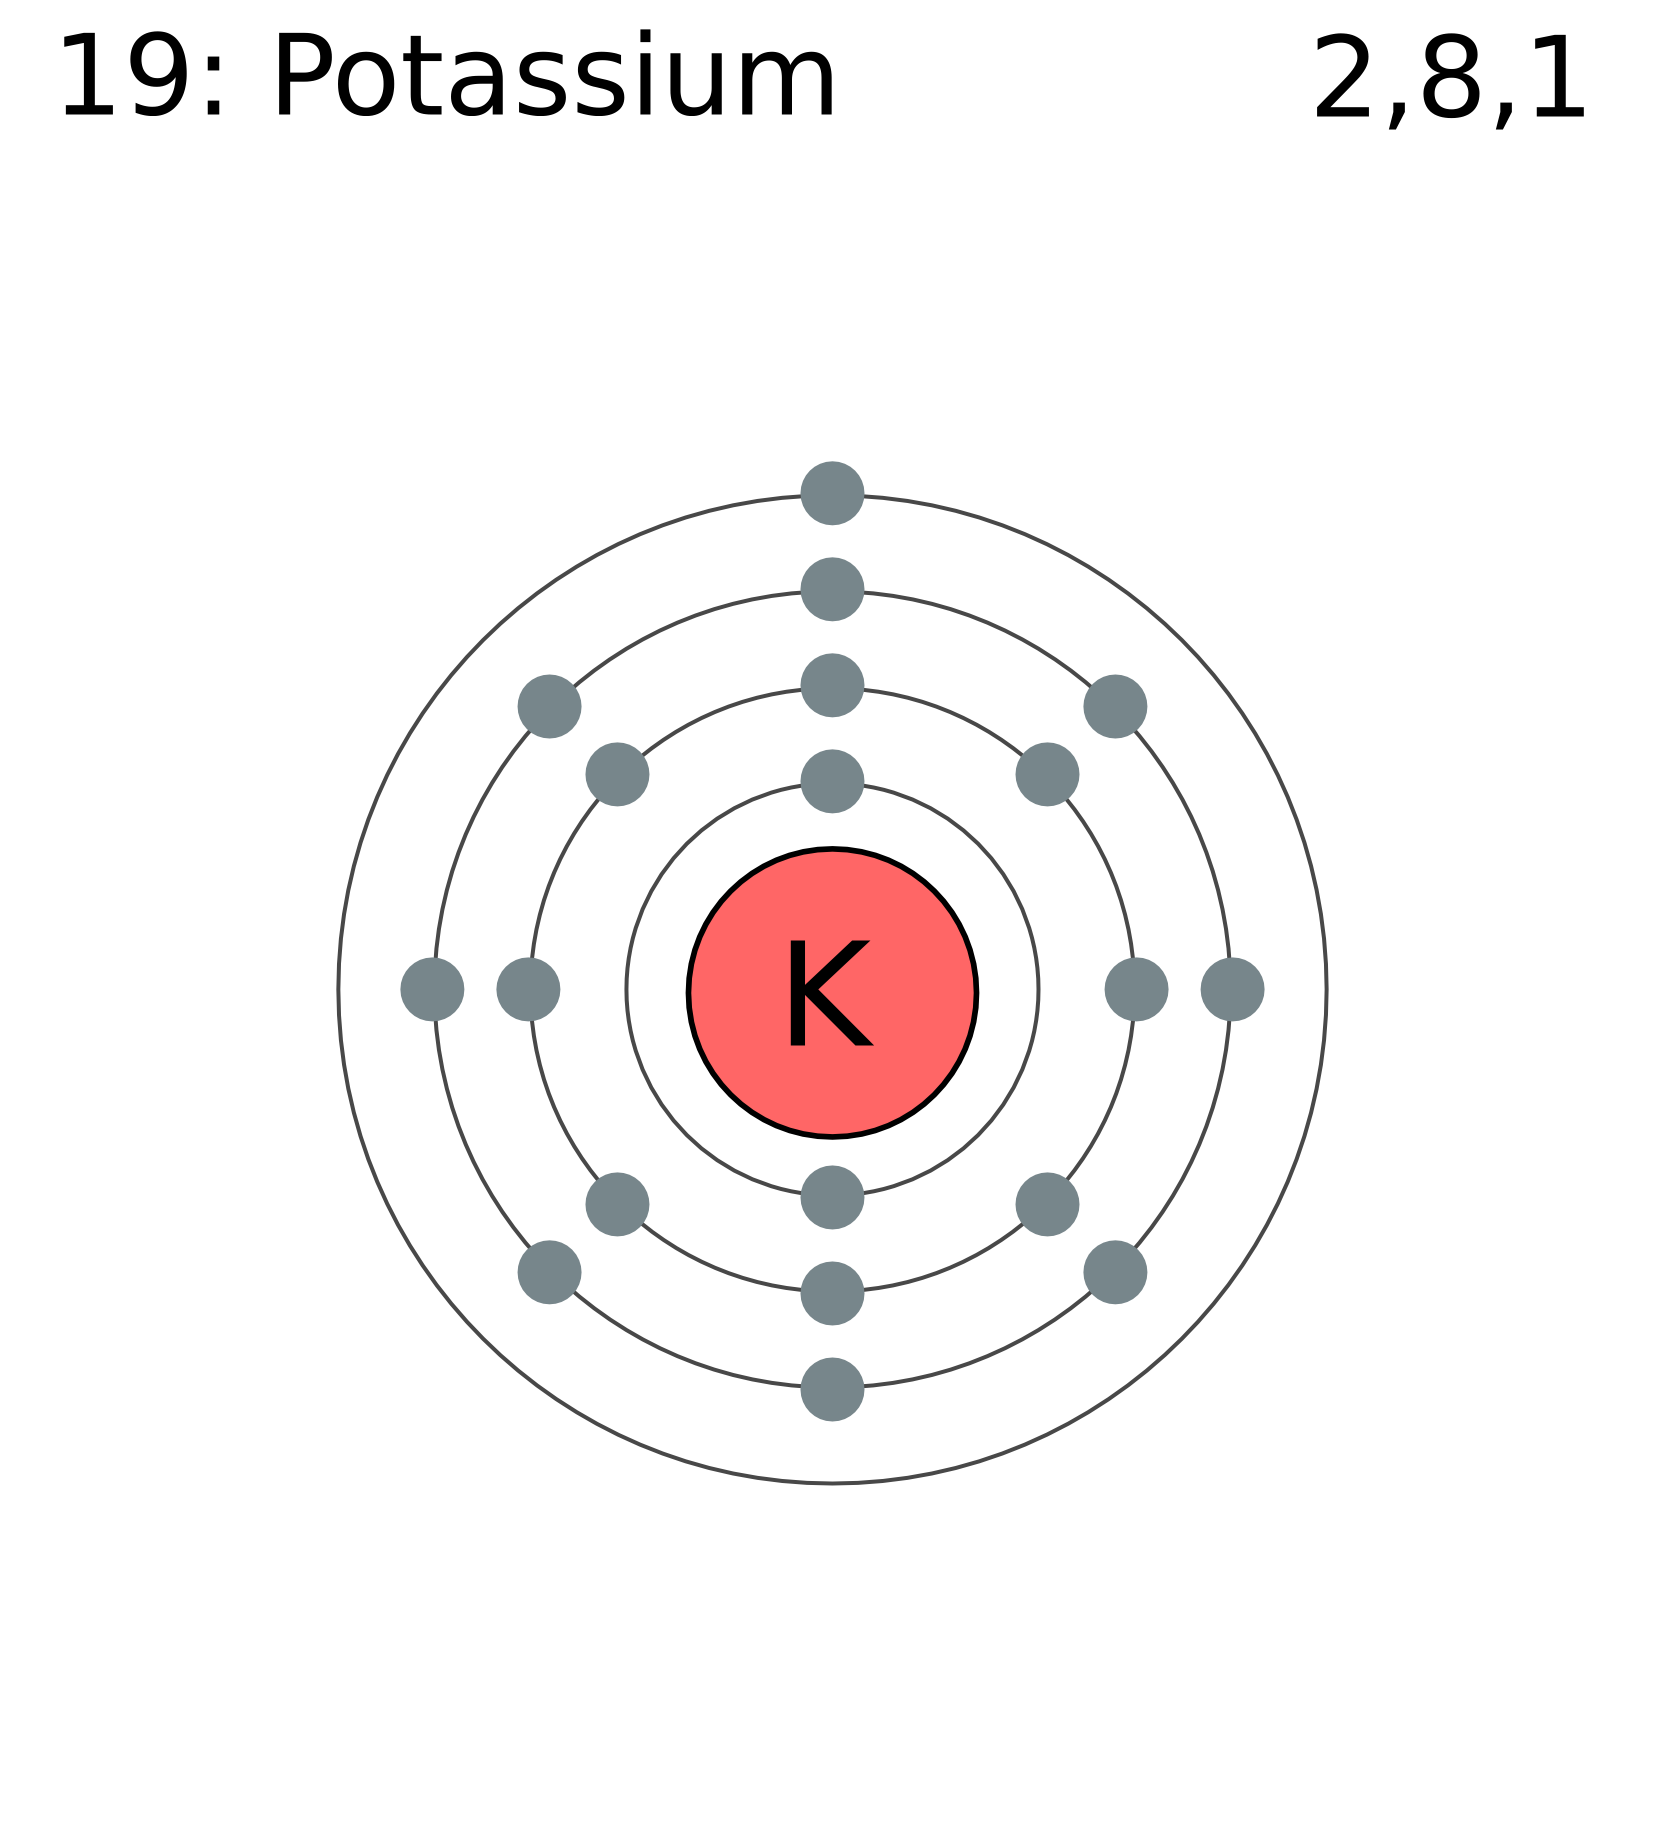 Potassium homeopathy world community it is the chemical element with the symbol k atomic number 19 potassium is a very important mineral for the proper function urtaz Image collections